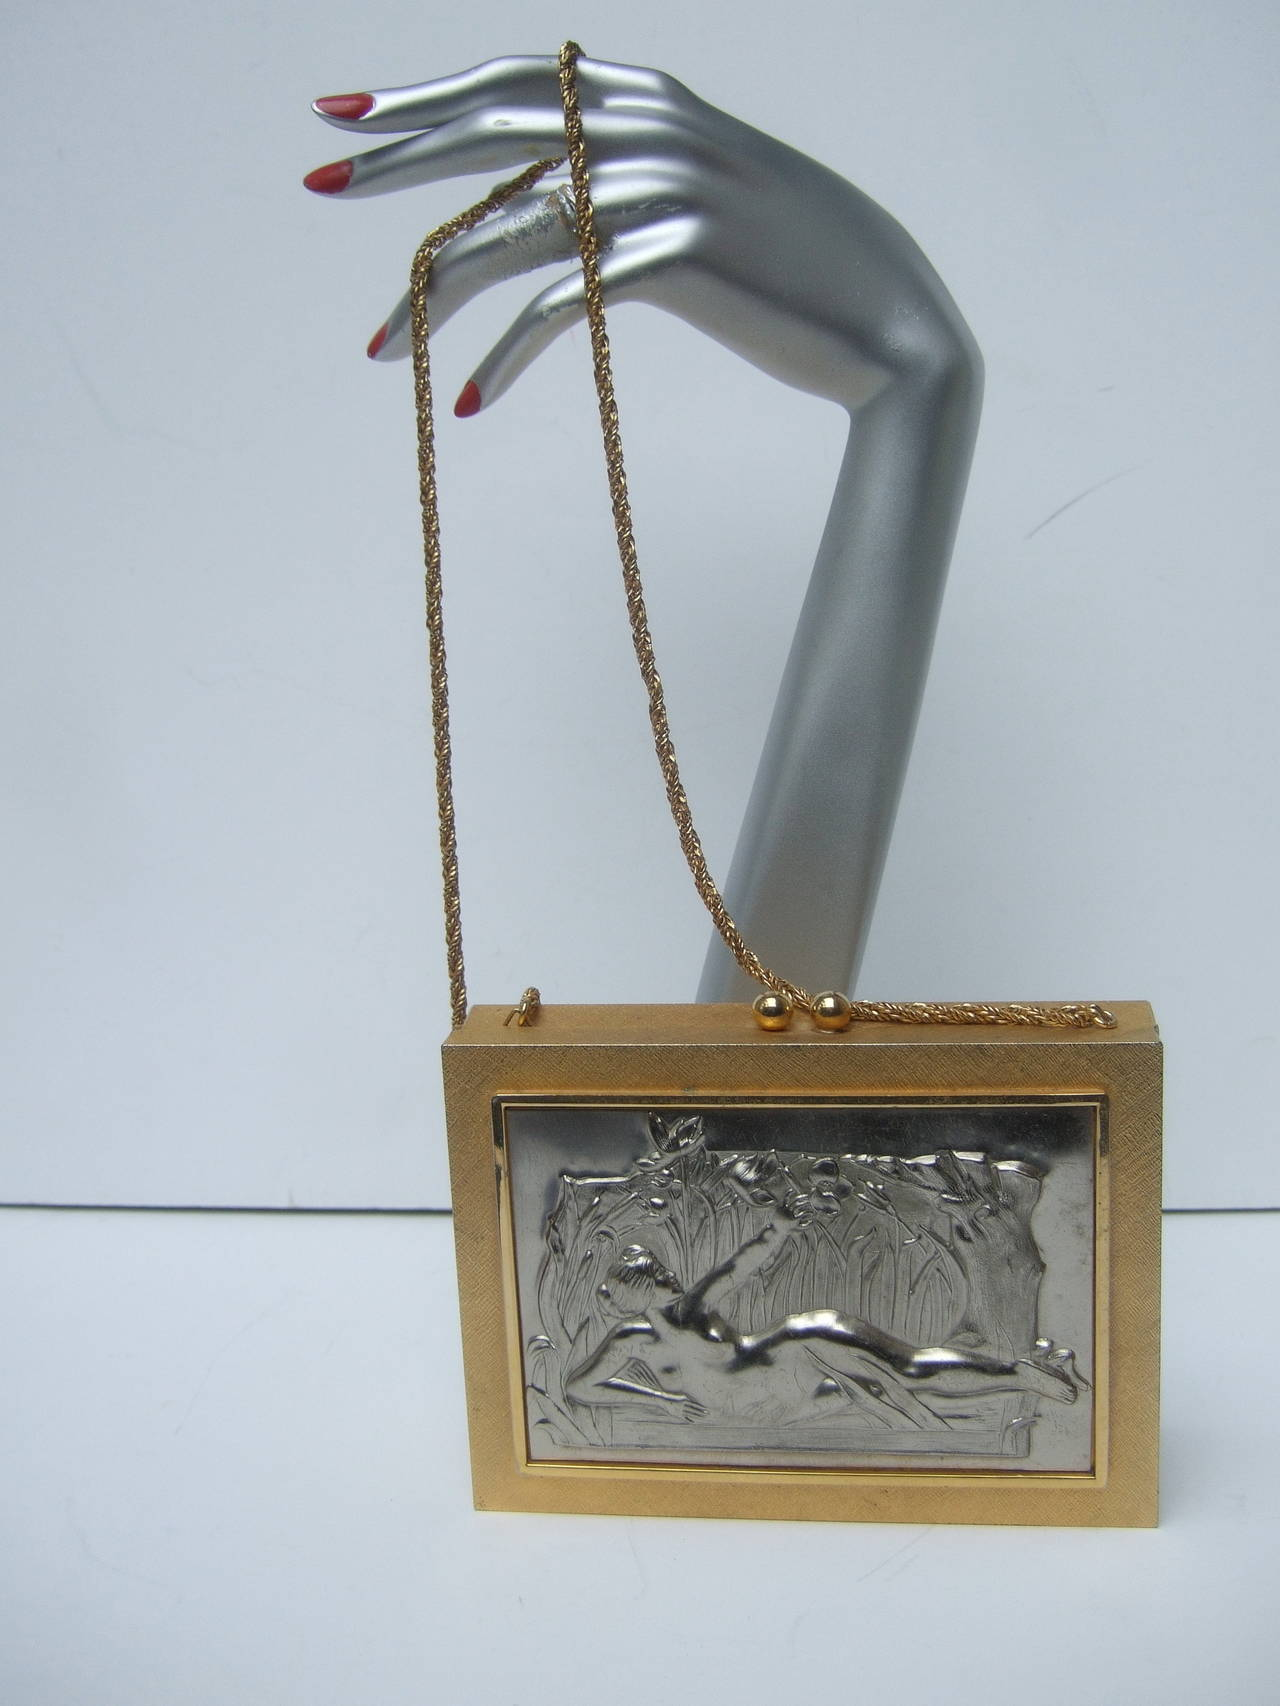 Exquisite Italian Gilt Metal Evening Bag Designed by Harry Rosenfeld In Good Condition For Sale In Santa Barbara, CA